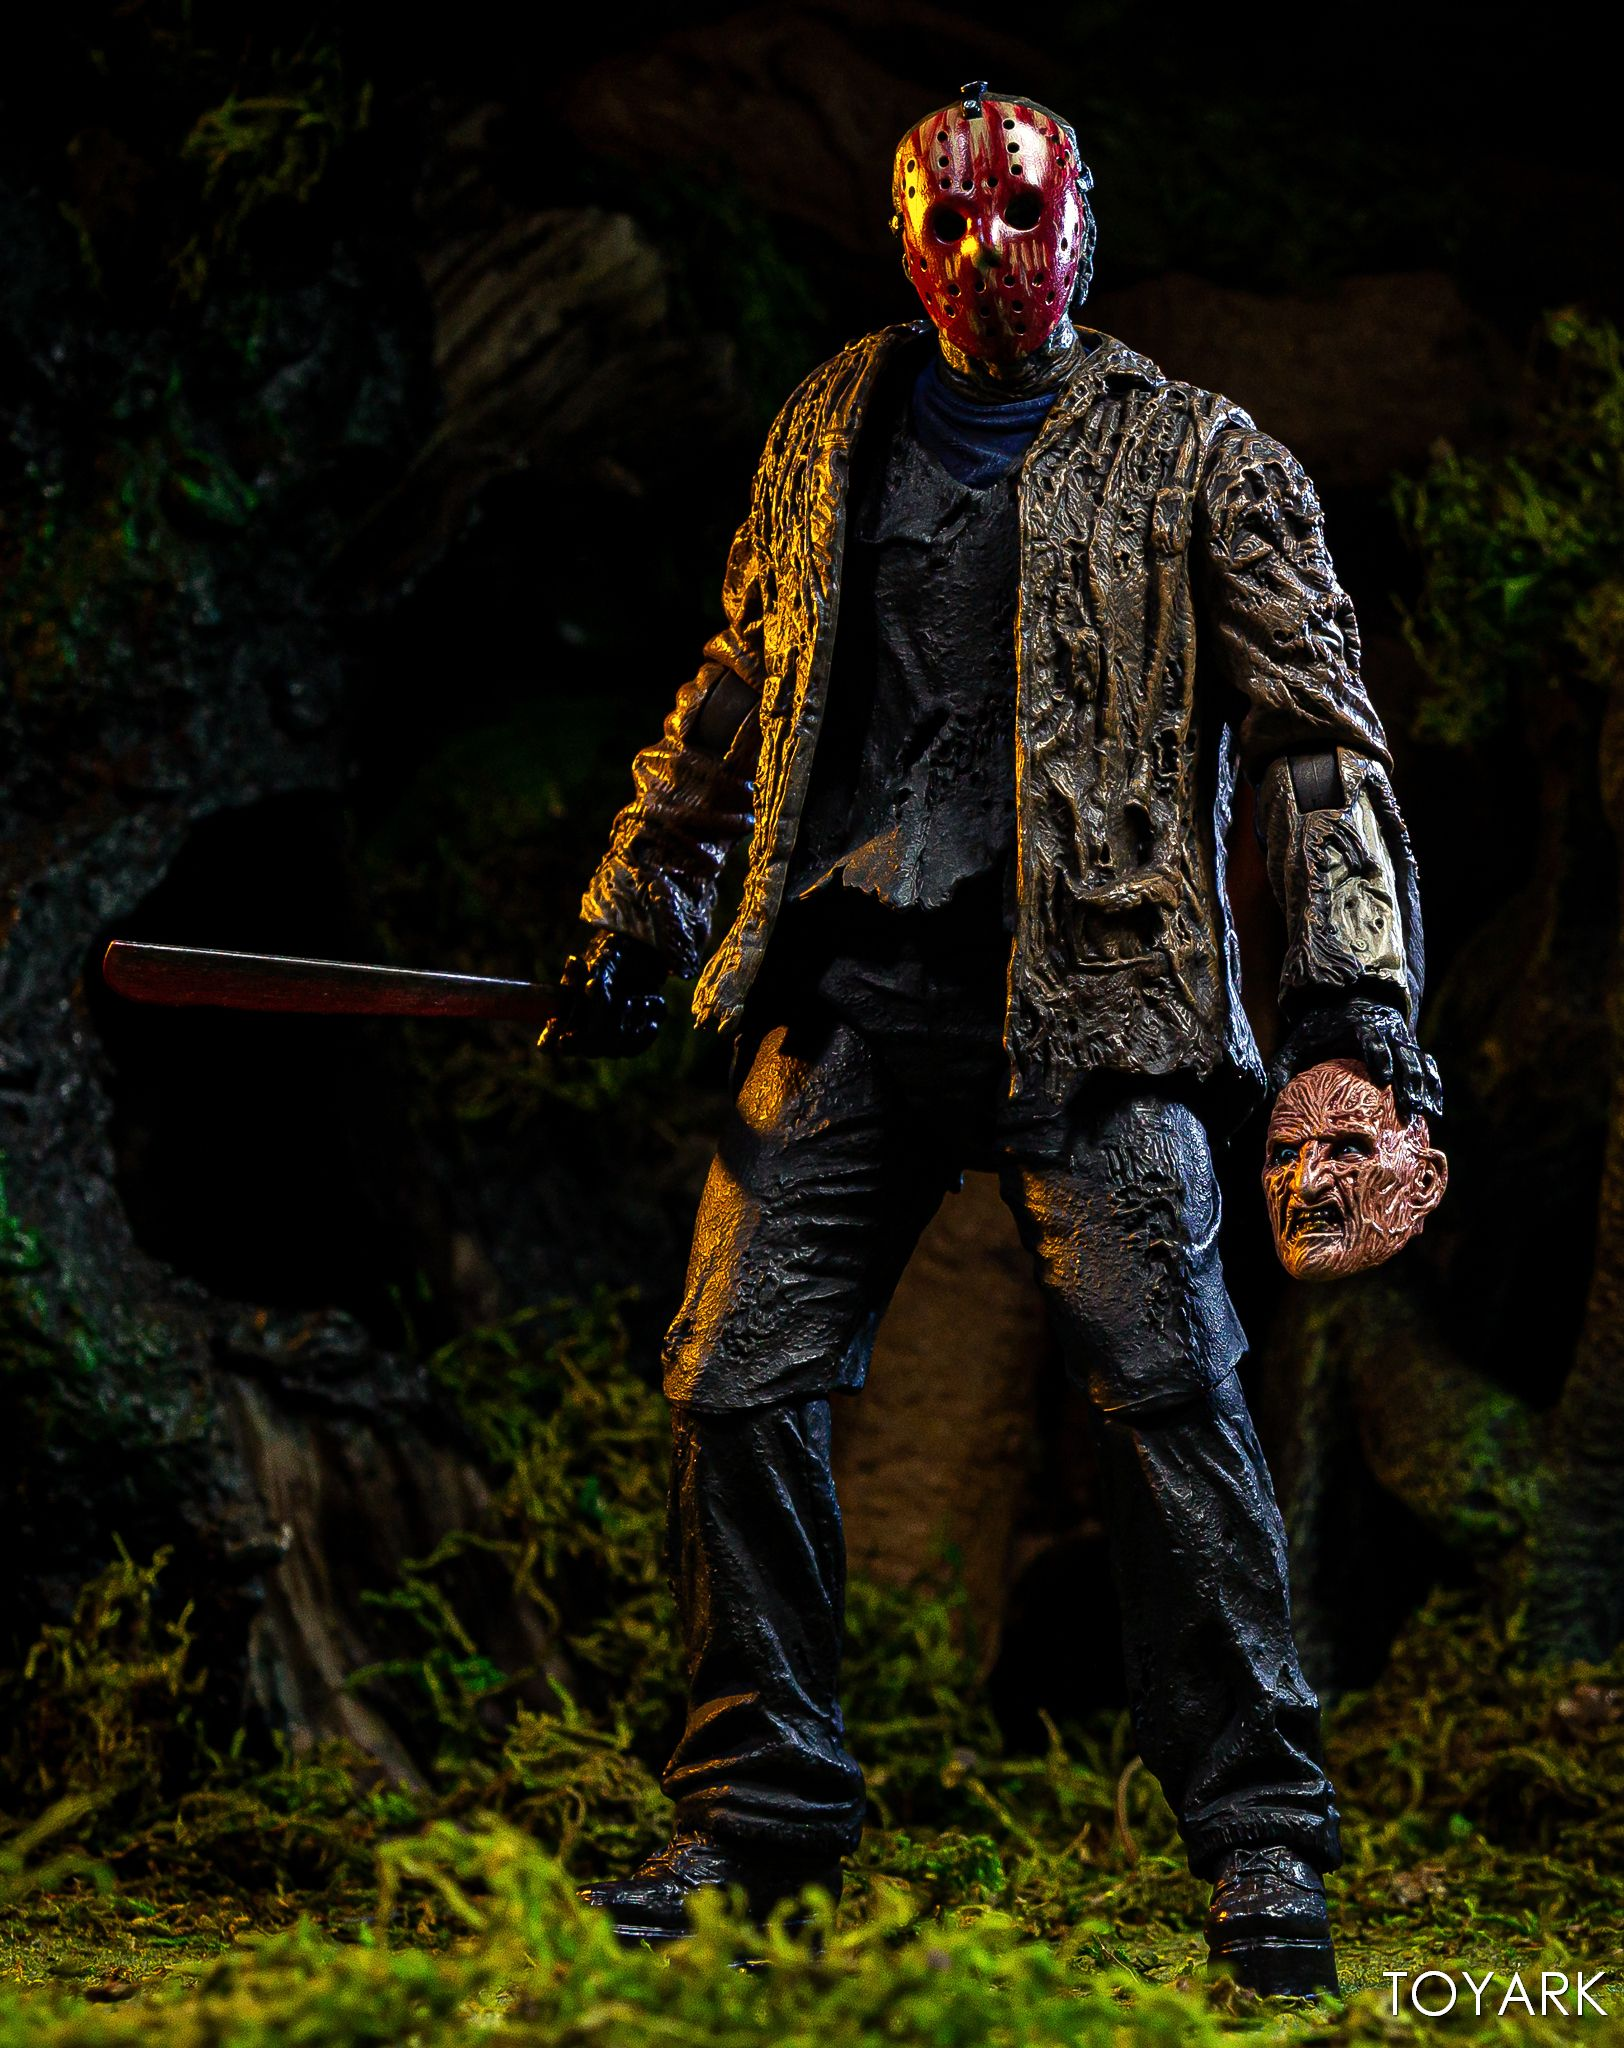 https://news.toyark.com/wp-content/uploads/sites/4/2019/07/FvJ-Jason-Voorhees-NECA-040.jpg